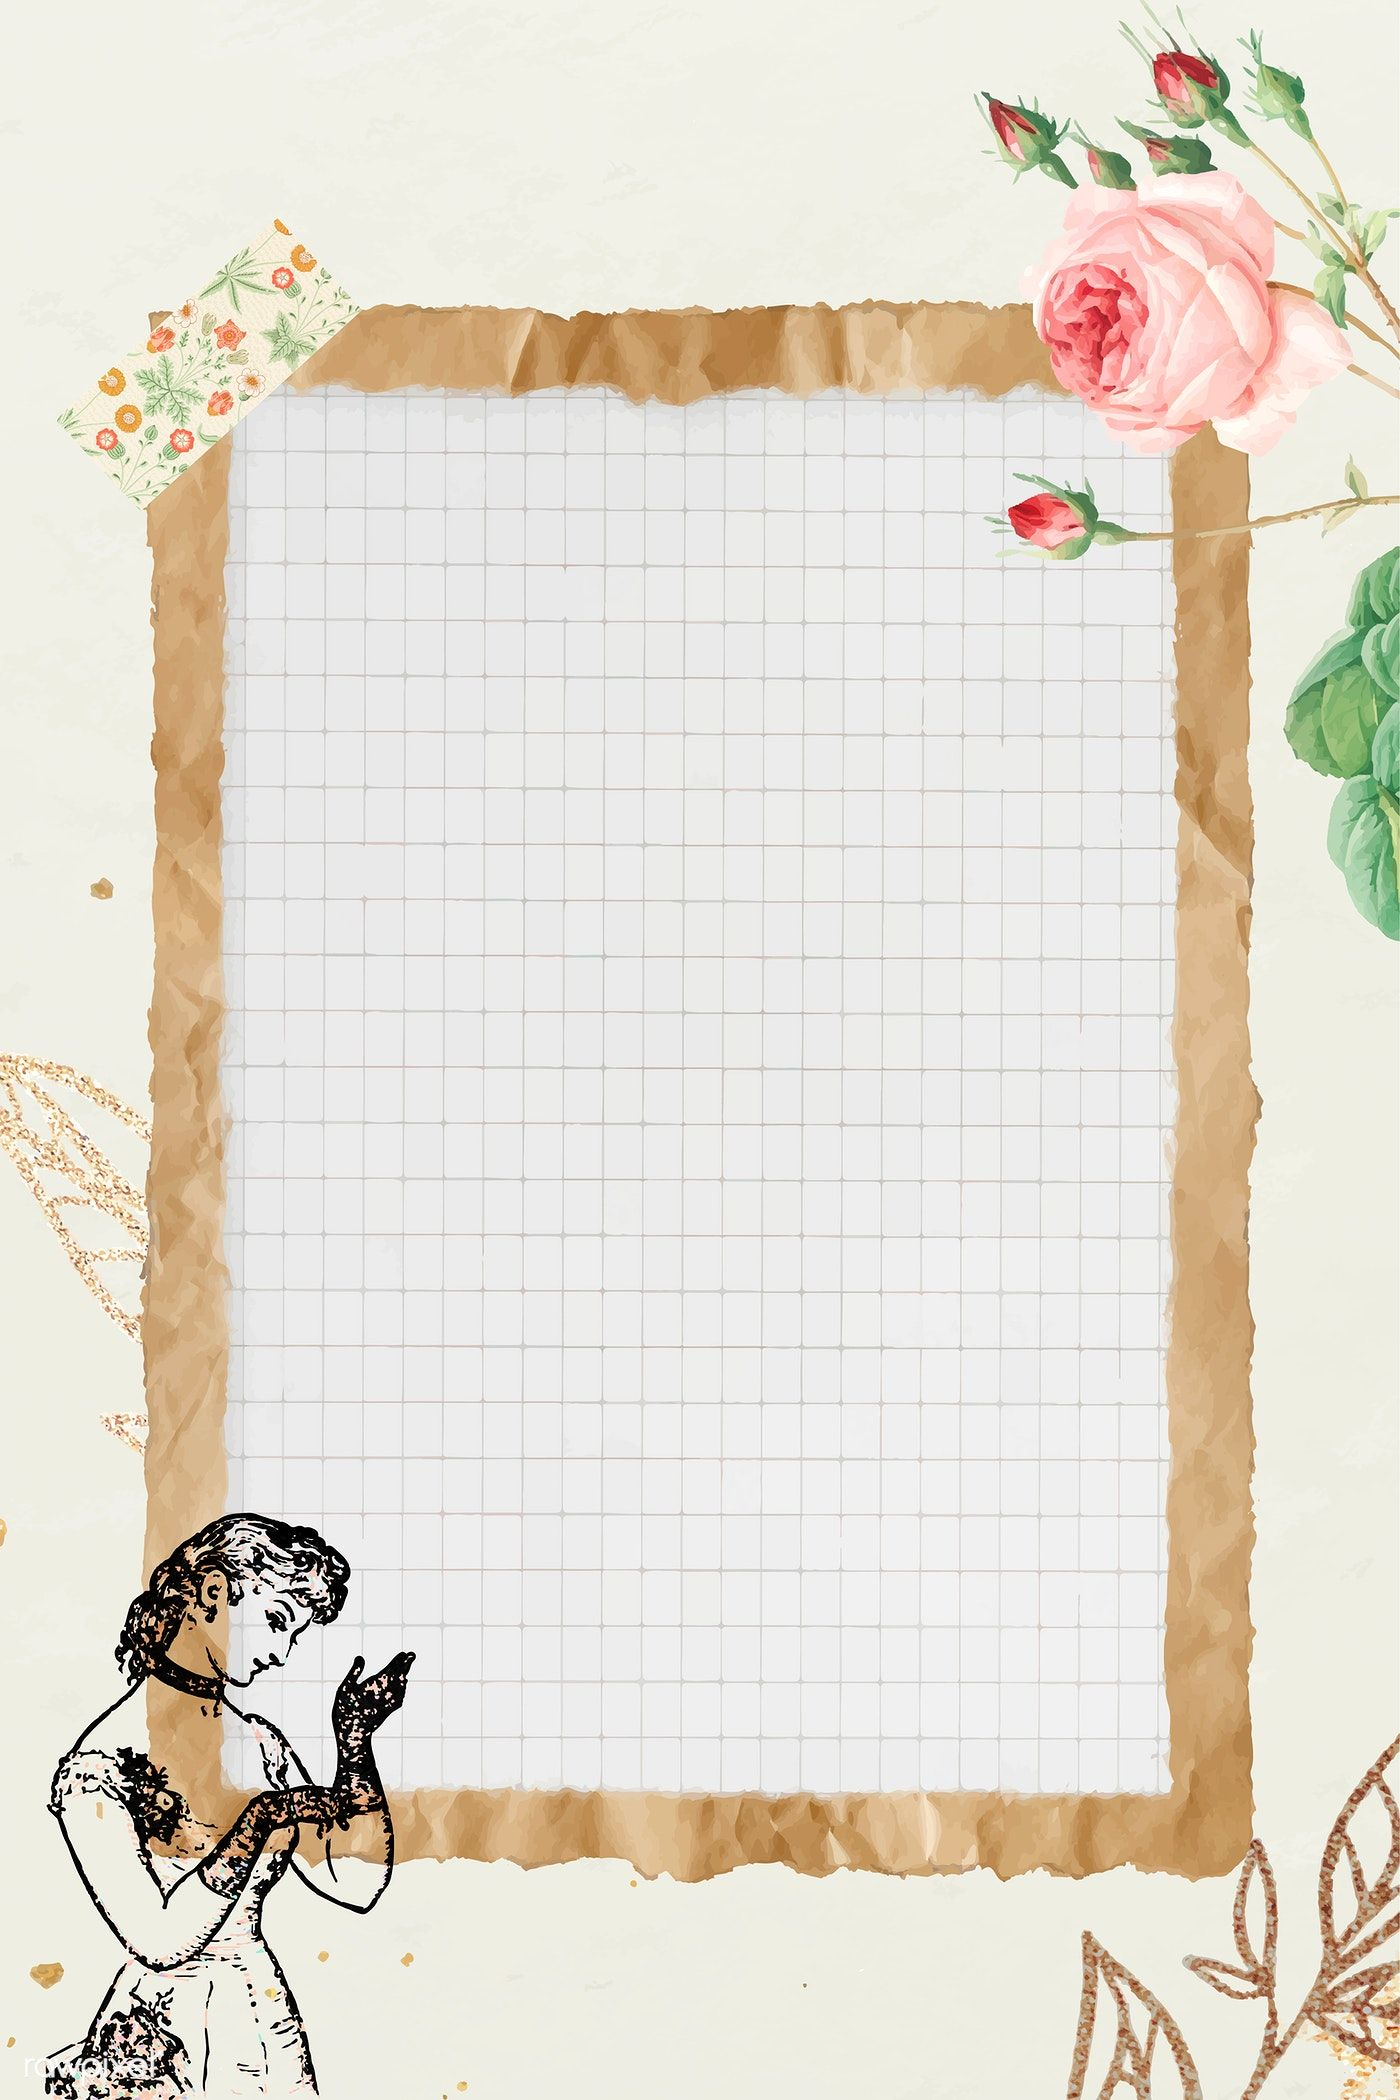 Download Premium Vector Of Crumpled Brown Paper Frame With Grid Background Paper Frames Paper Background Design Aesthetic Iphone Wallpaper